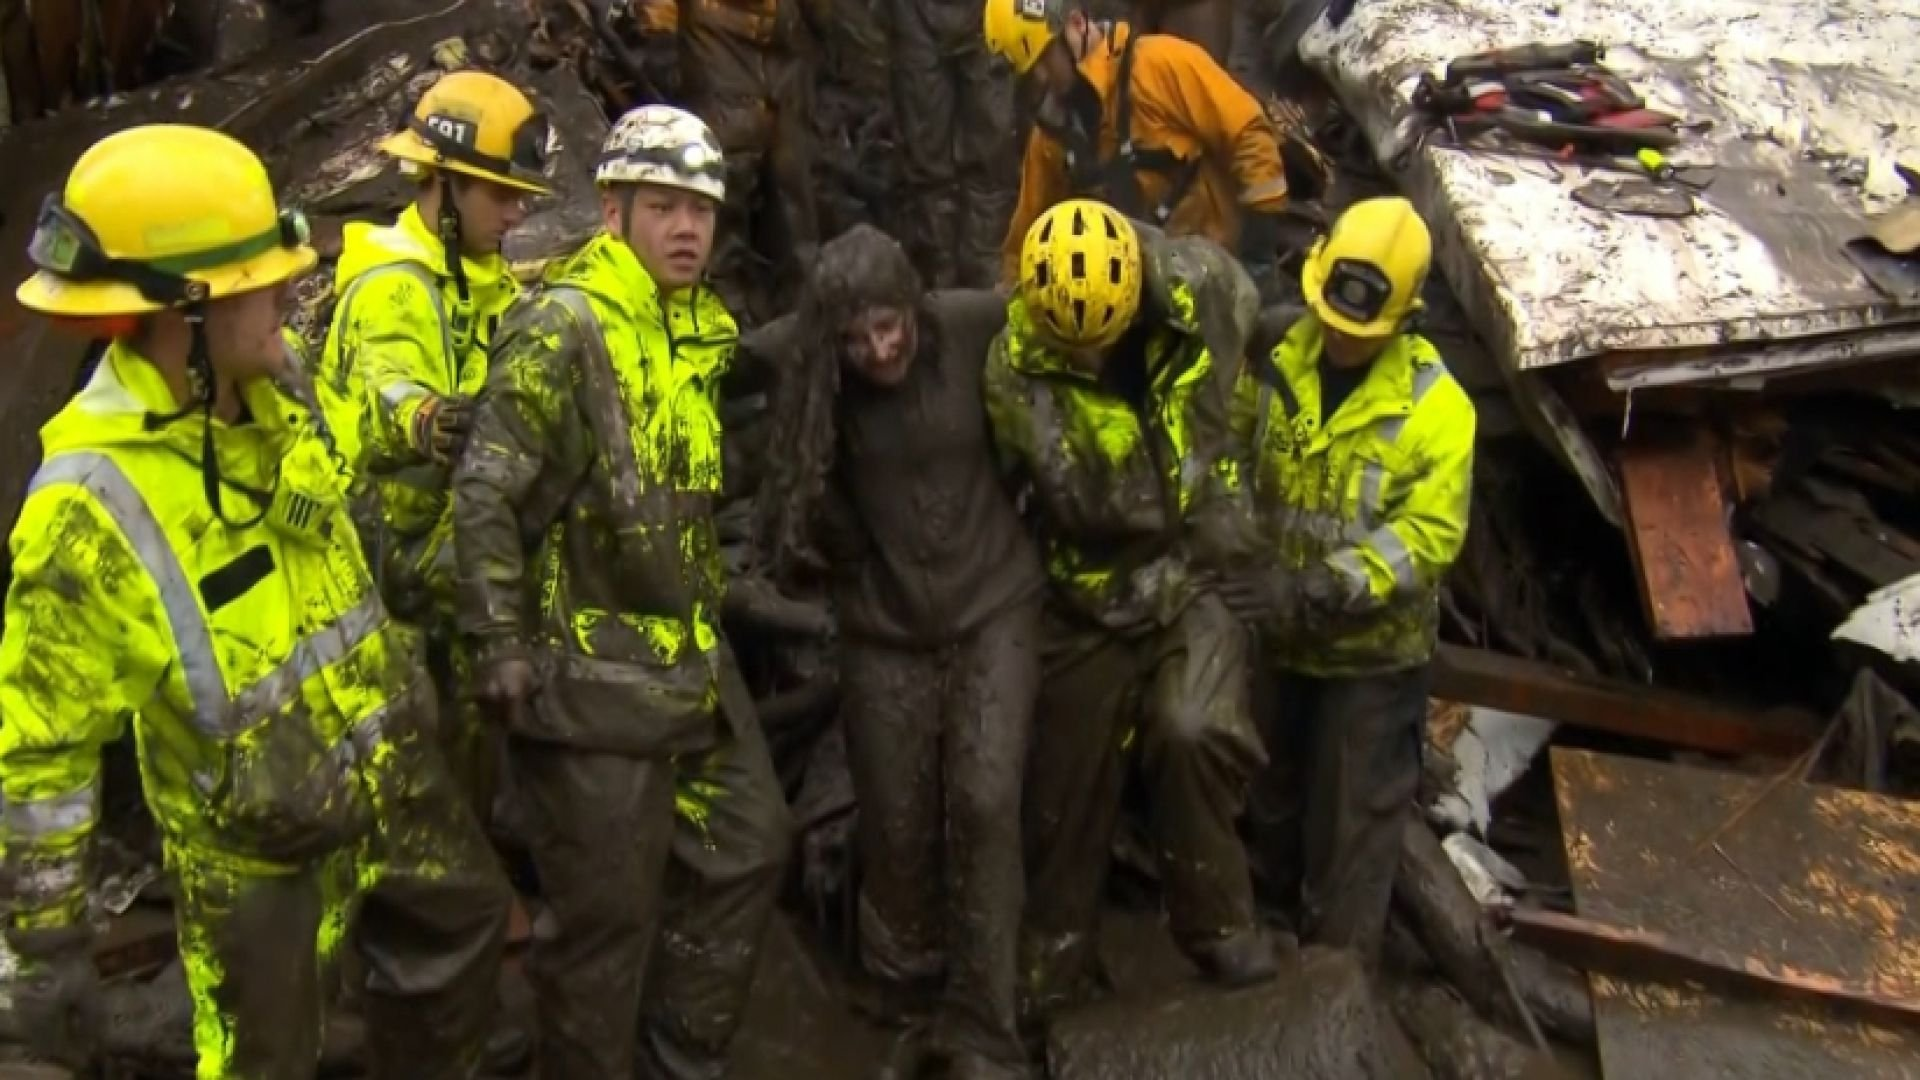 Rescue workers hoping for miracles after California mudslide